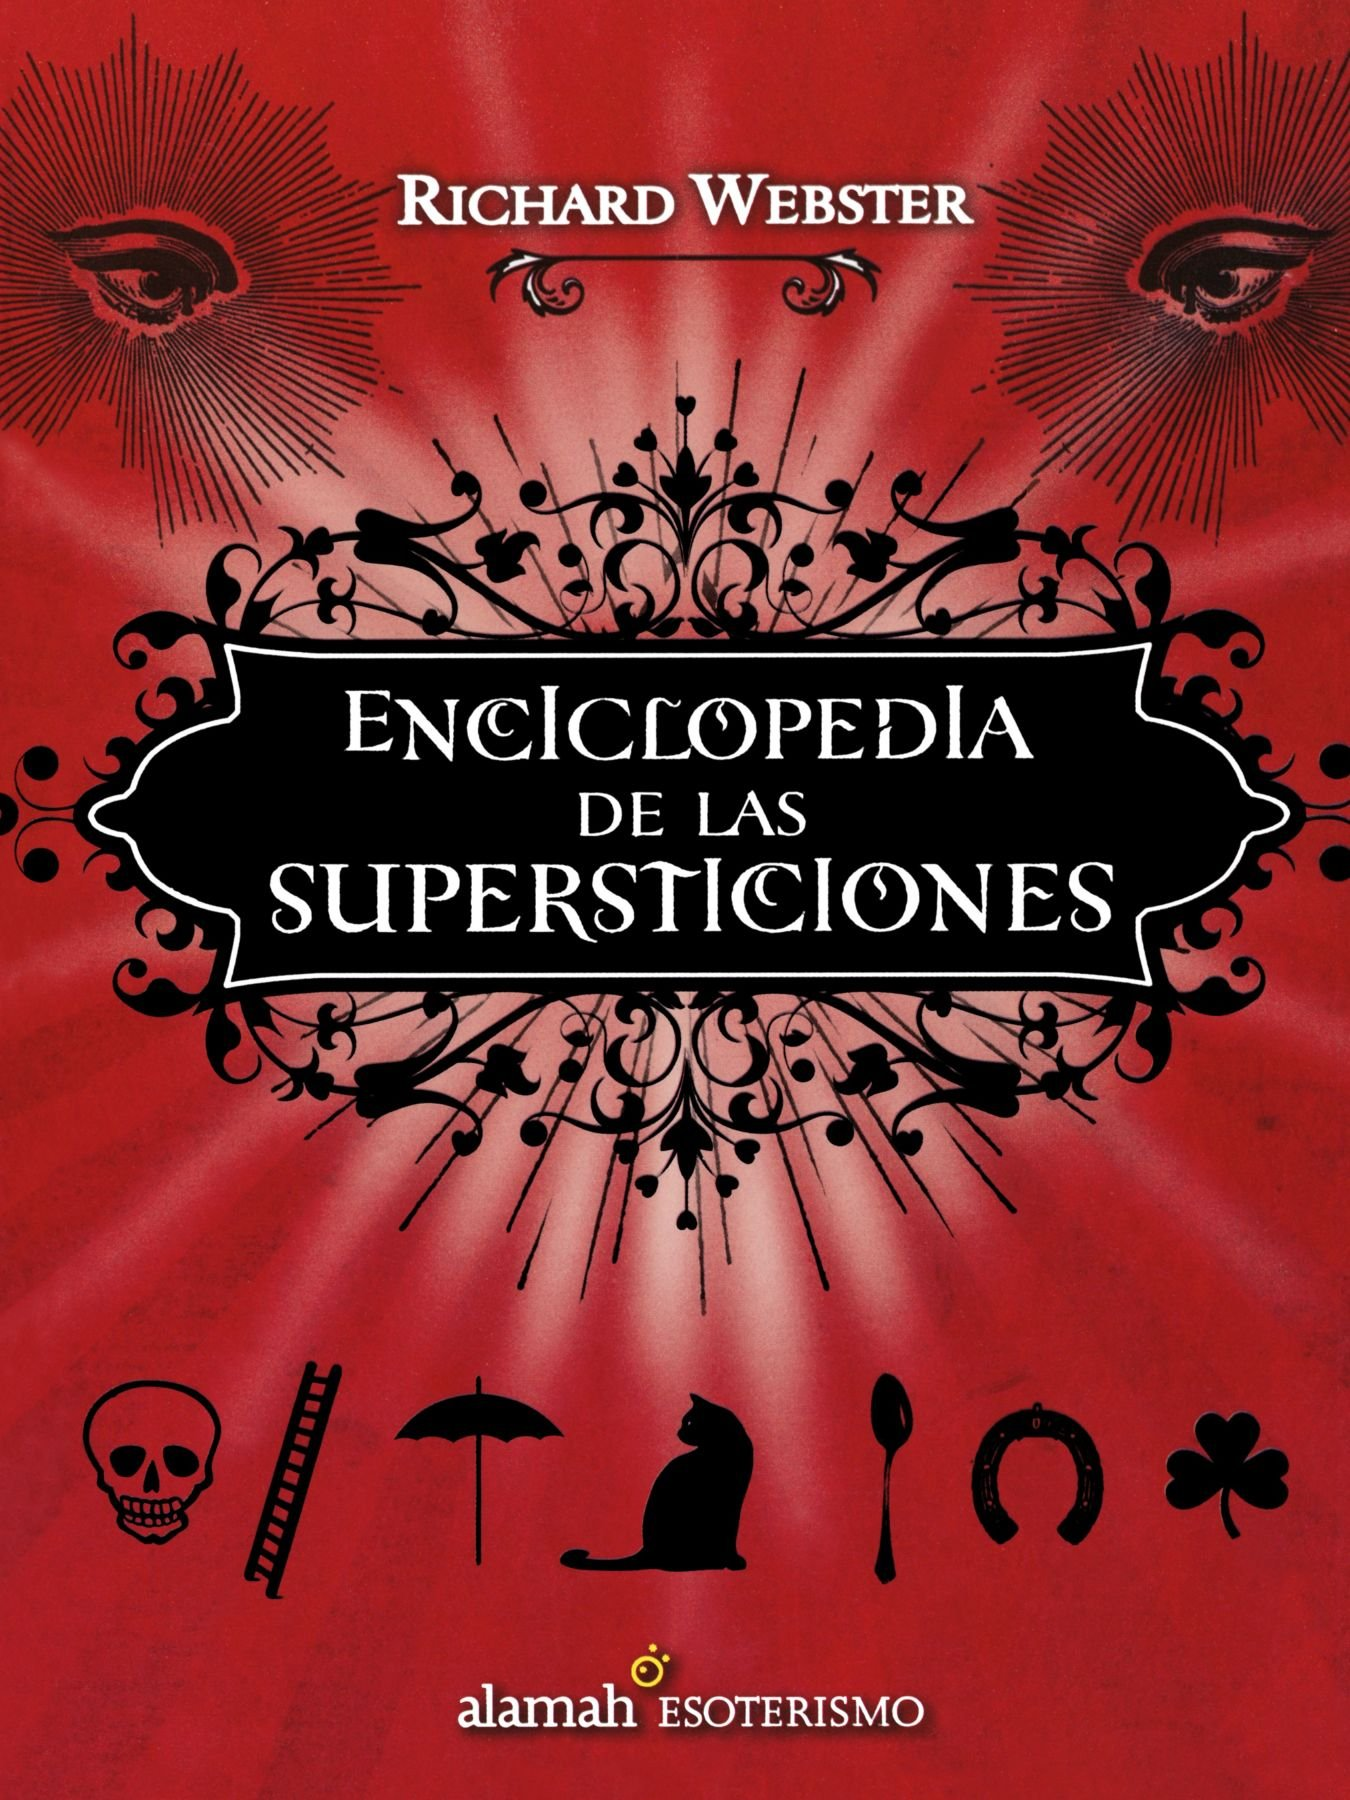 Enciclopedia de las supersticiones / The Encyclopedia of Superstitions (Spanish Edition): Richard Webster: 9786071101273: Amazon.com: Books